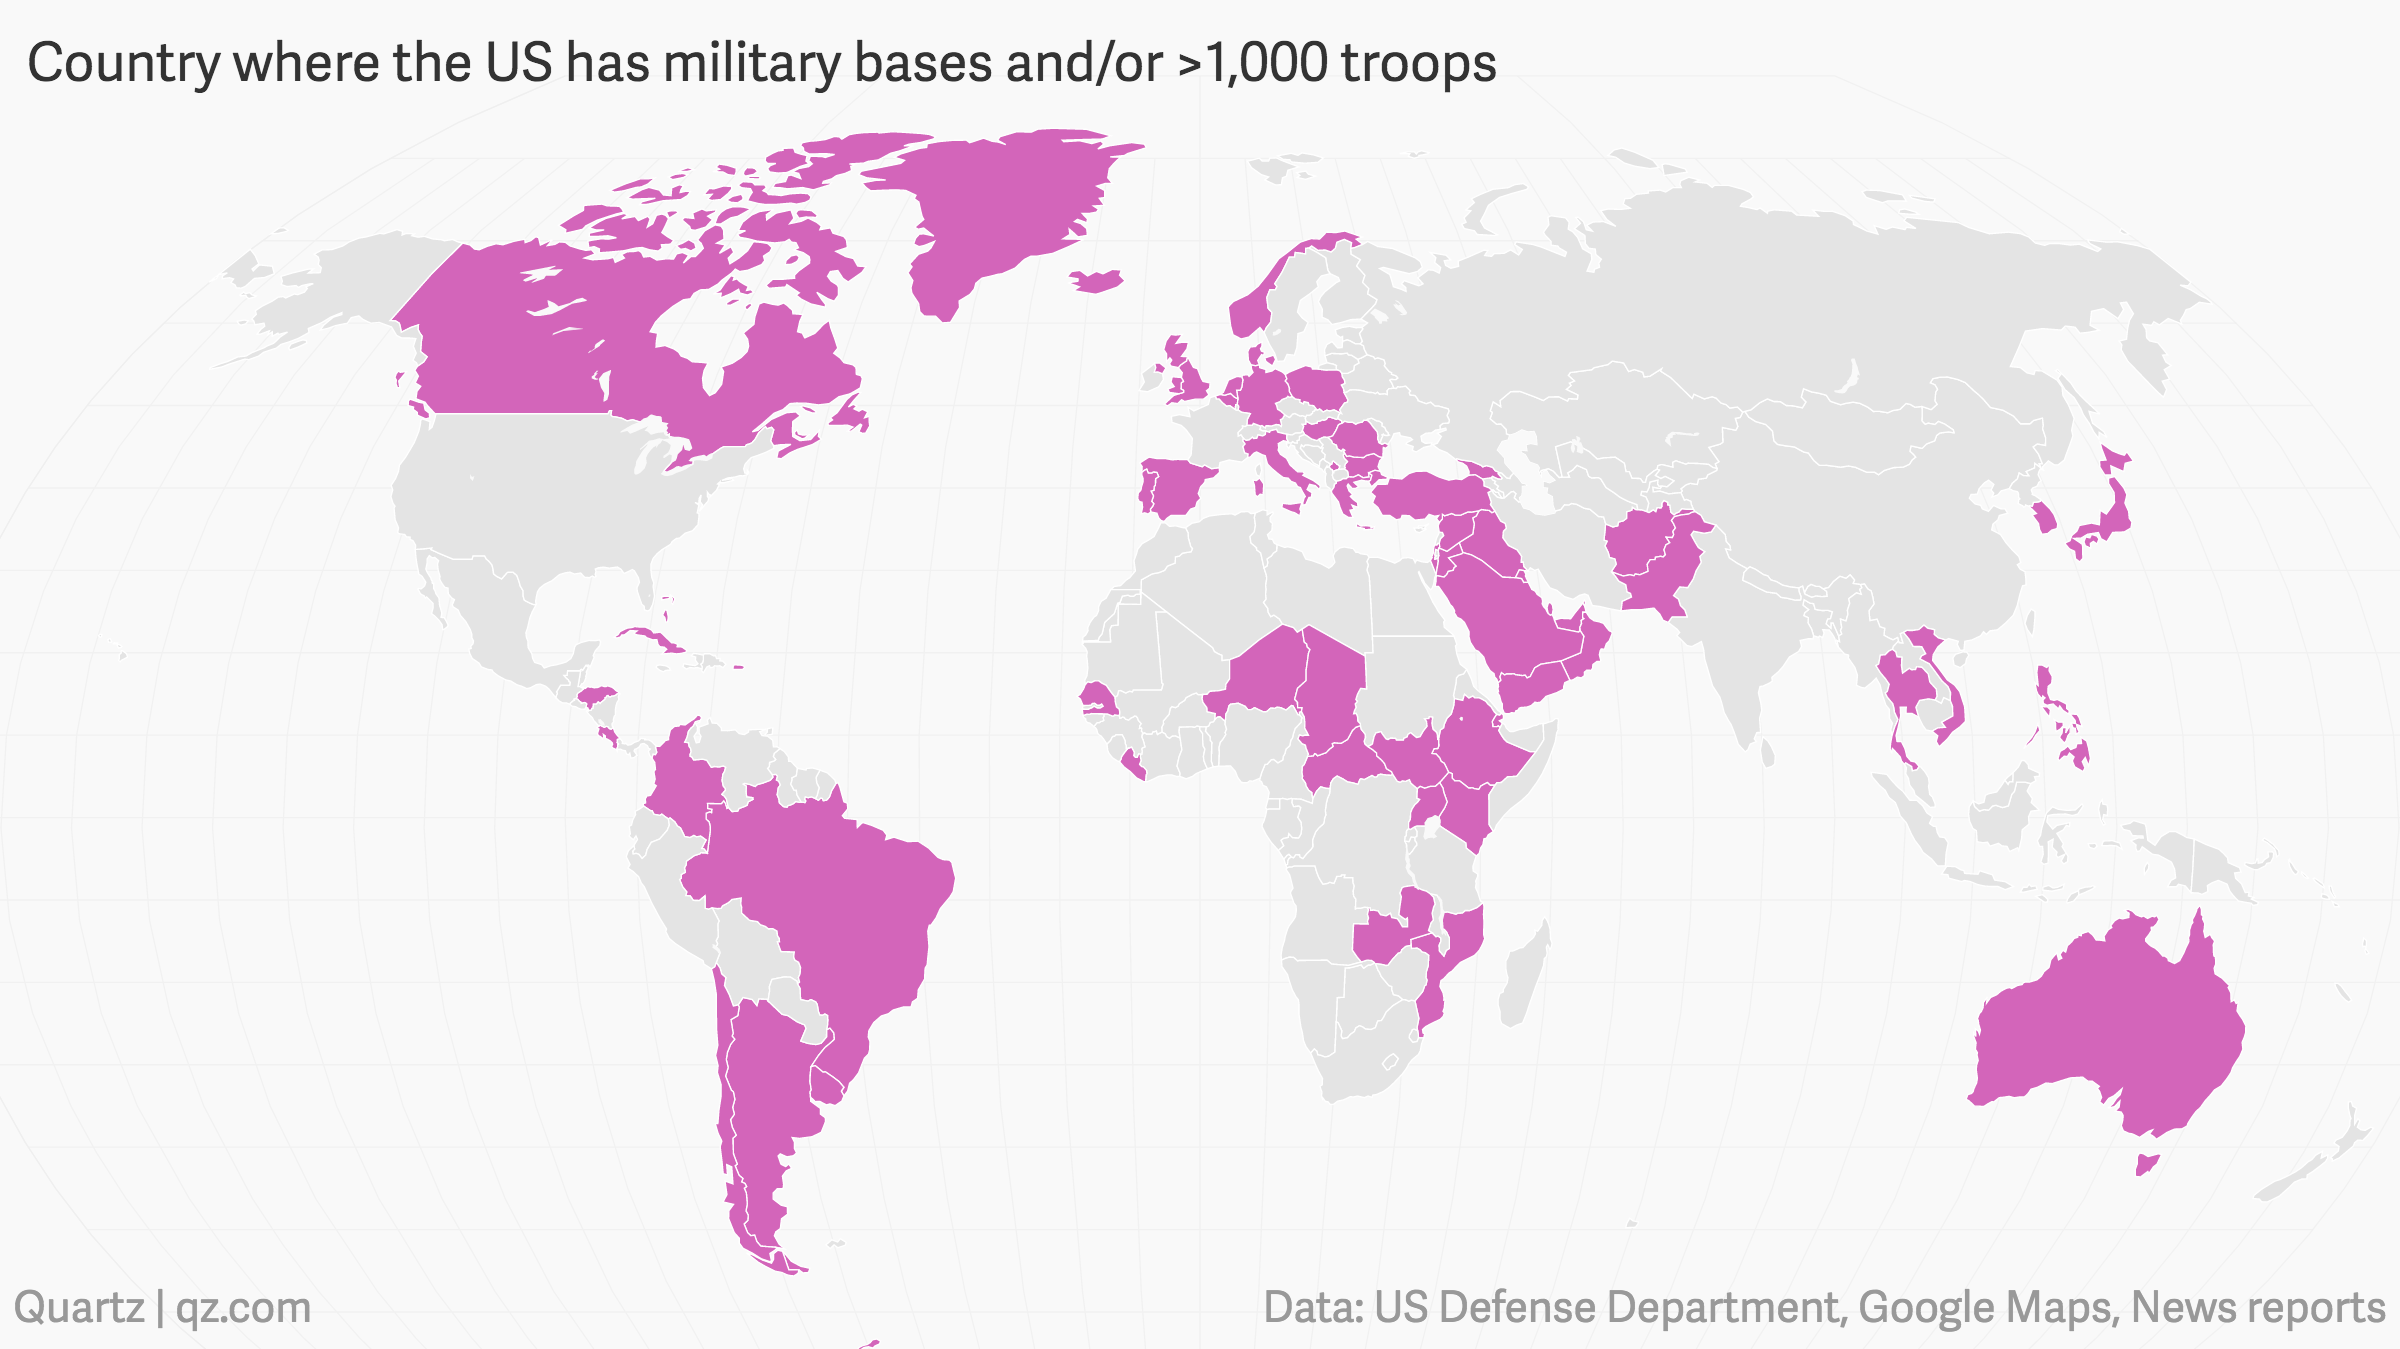 Country-where-the-US-has-military-bases-and-or-1-000-troops_mapbuilder